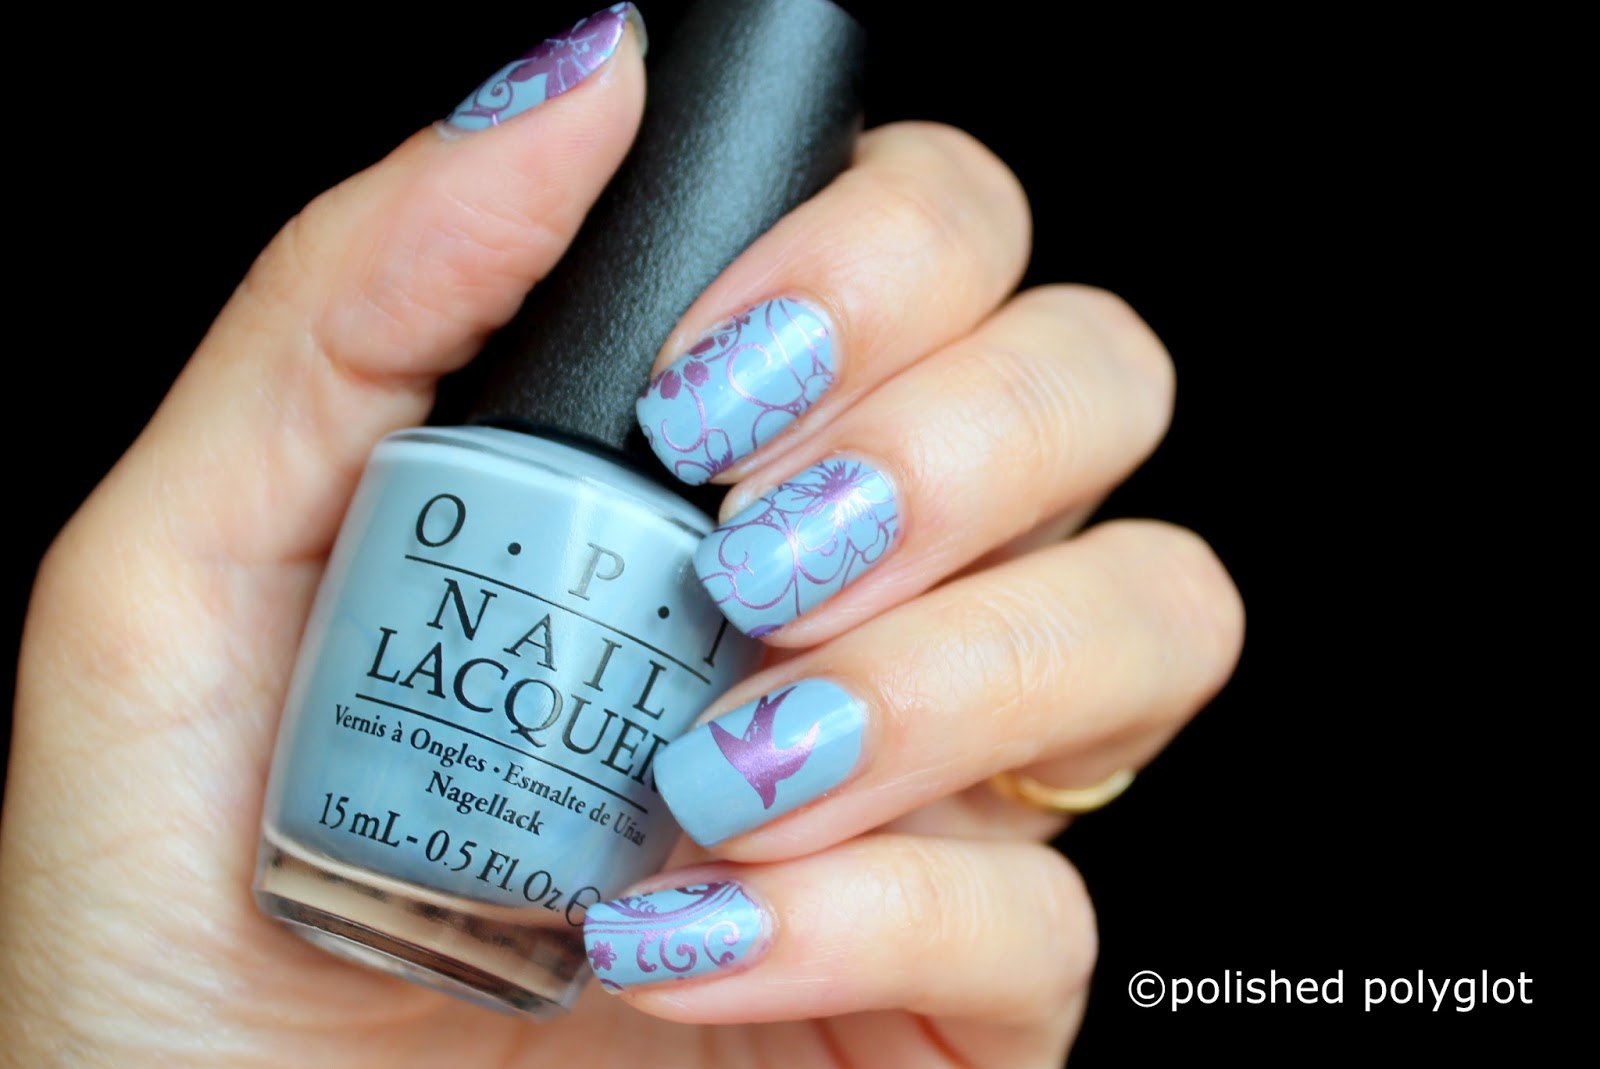 Nail Art Birds And Flowers Over Opi Check Out The Old Geysirs